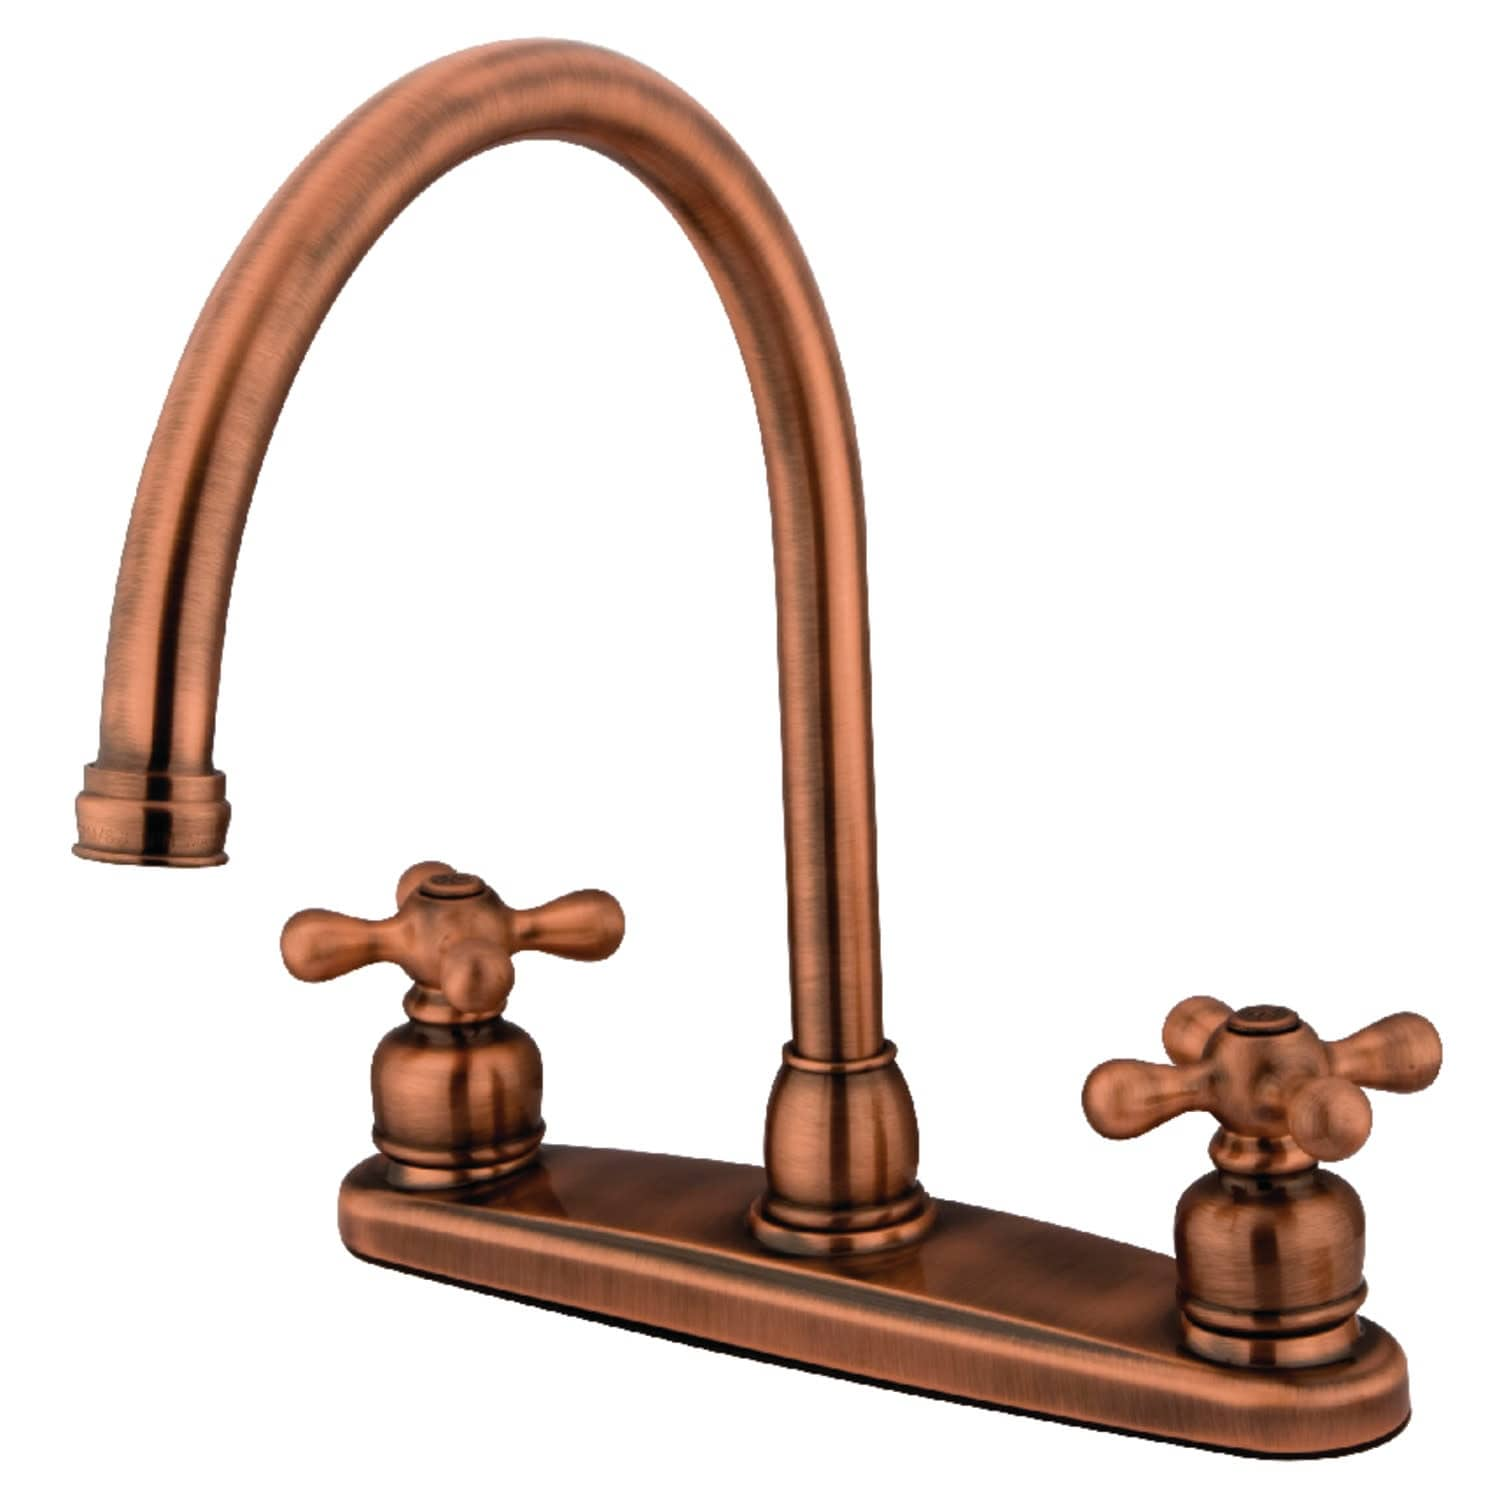 Kingston Brass Kb72 Axls 1 8 Gpm Widespread Kitchen Faucet With Cross Antique Copper Overstock 31953223